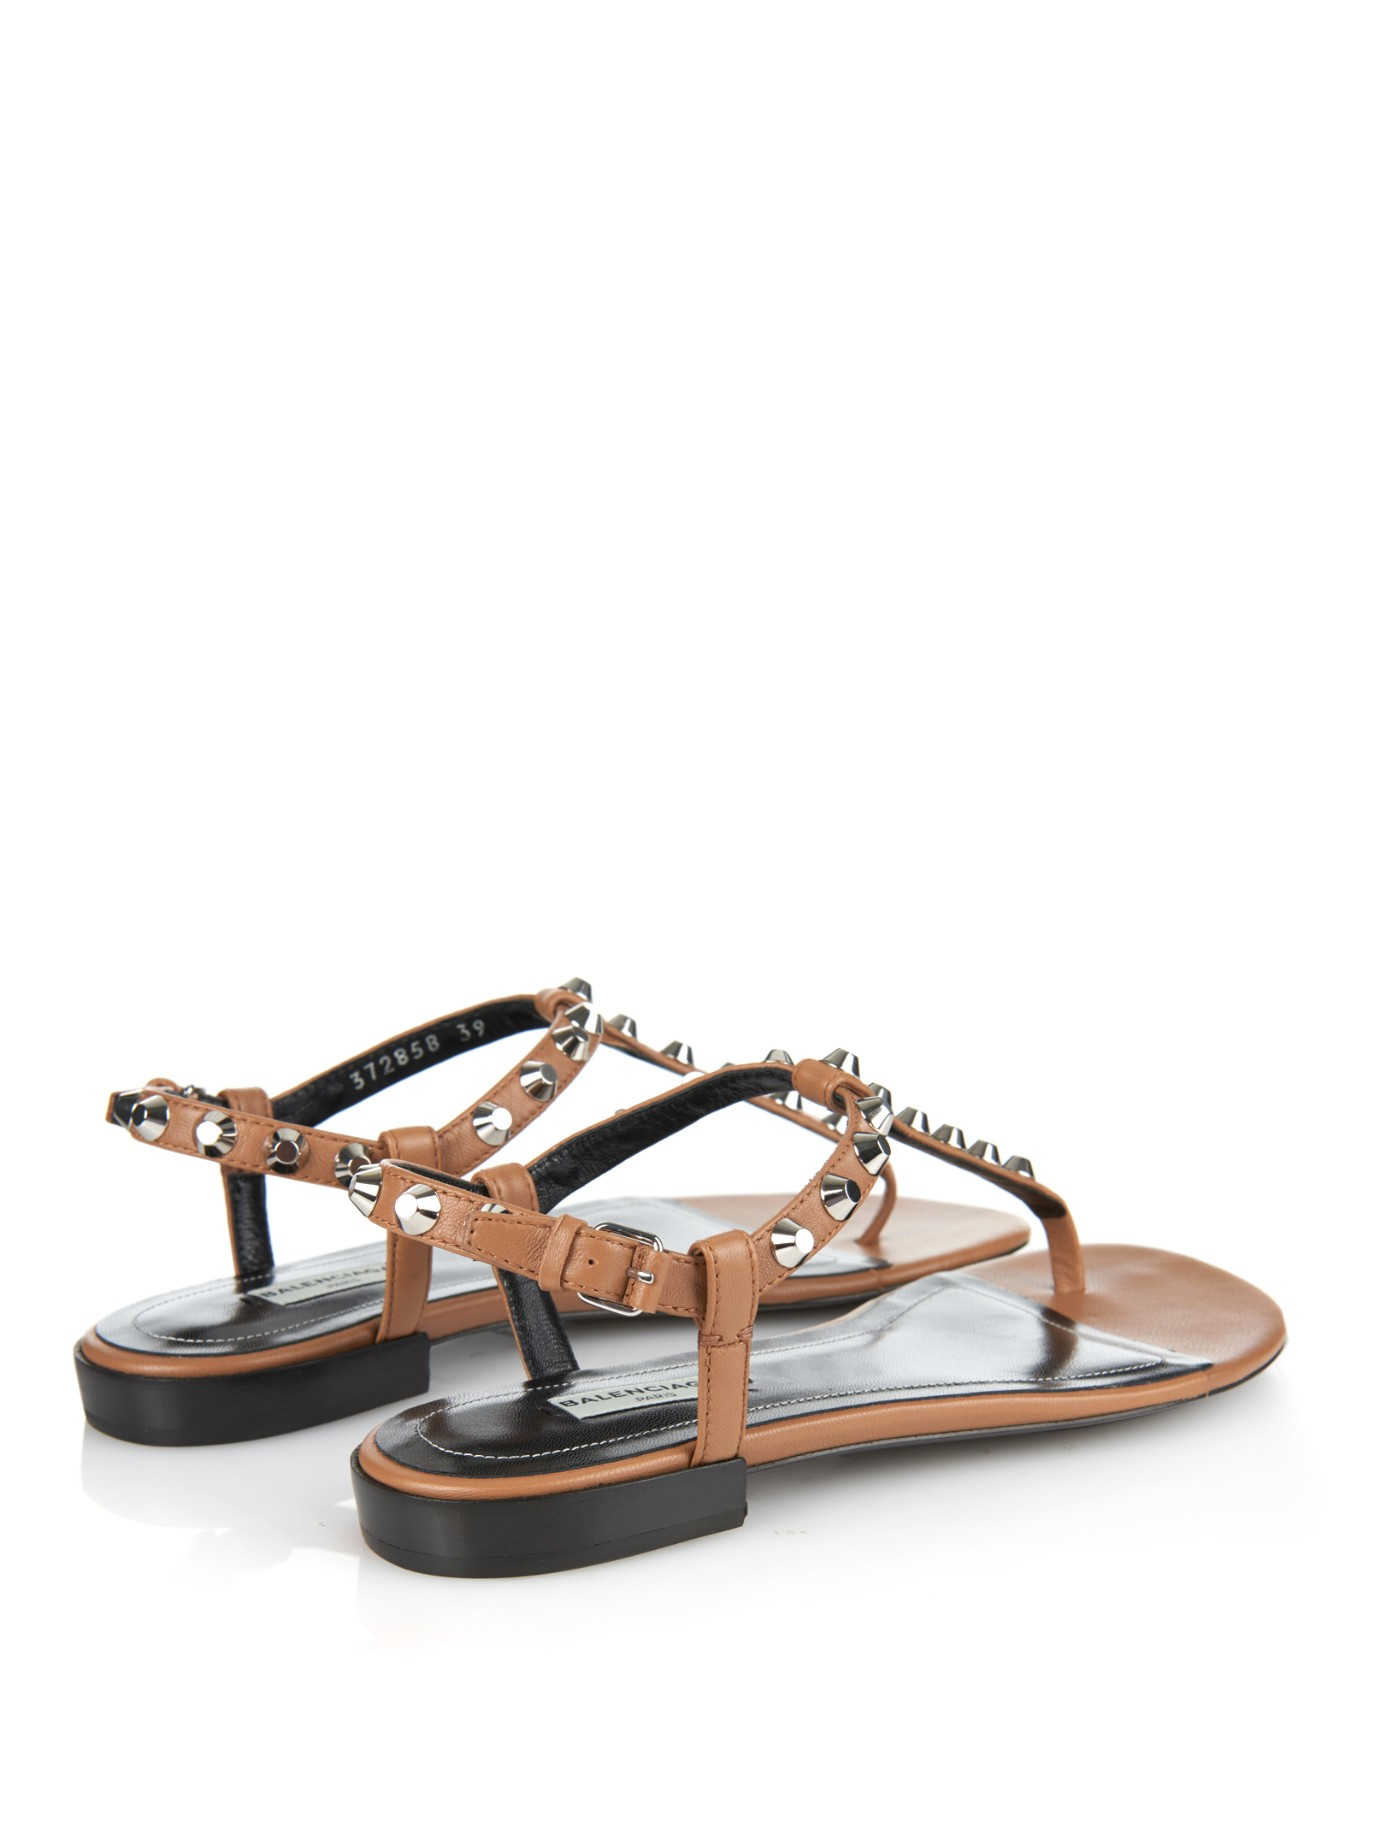 3afe70a8ed4d Lyst - Balenciaga Arena Studded Flat Sandals in Brown